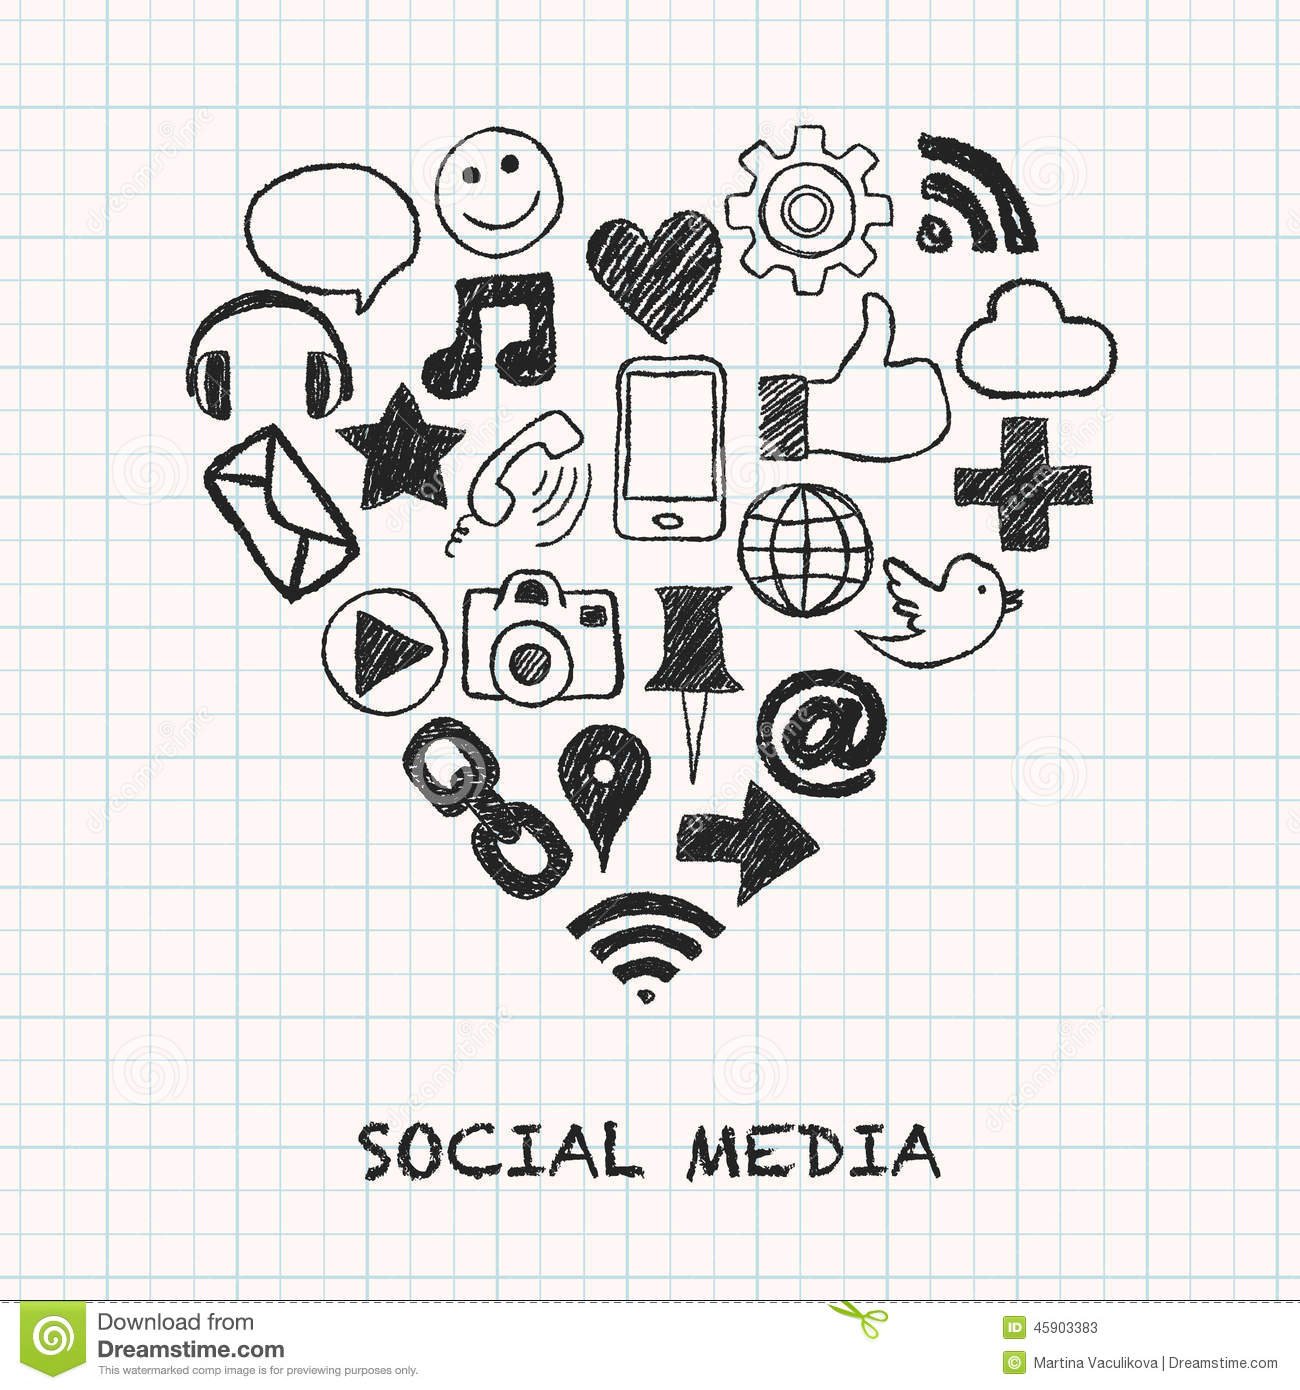 Social time the heartbeat of culture essay